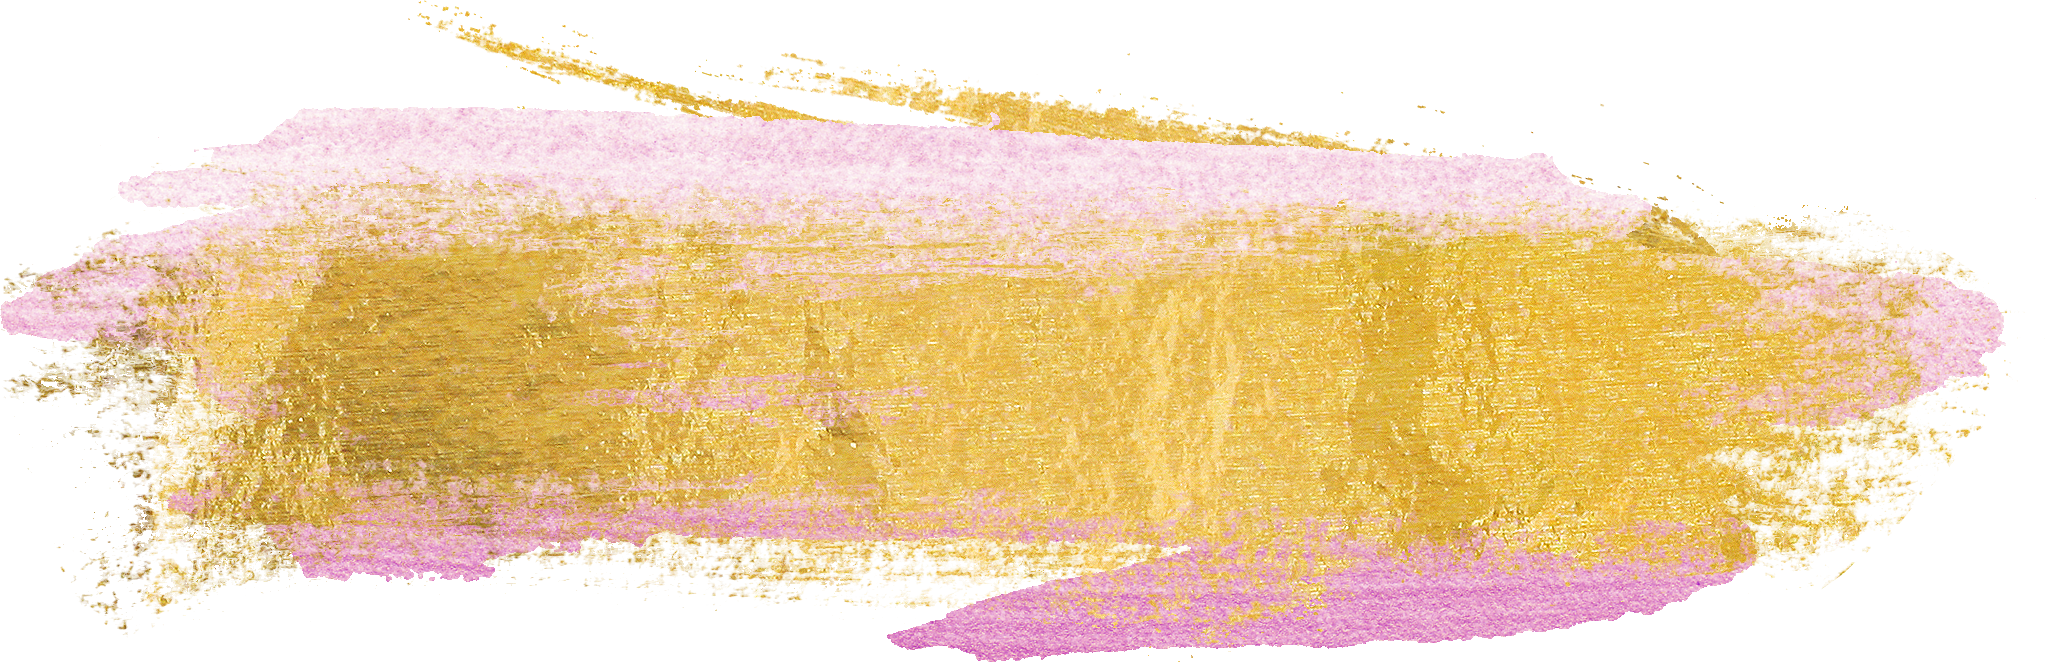 gold paint png